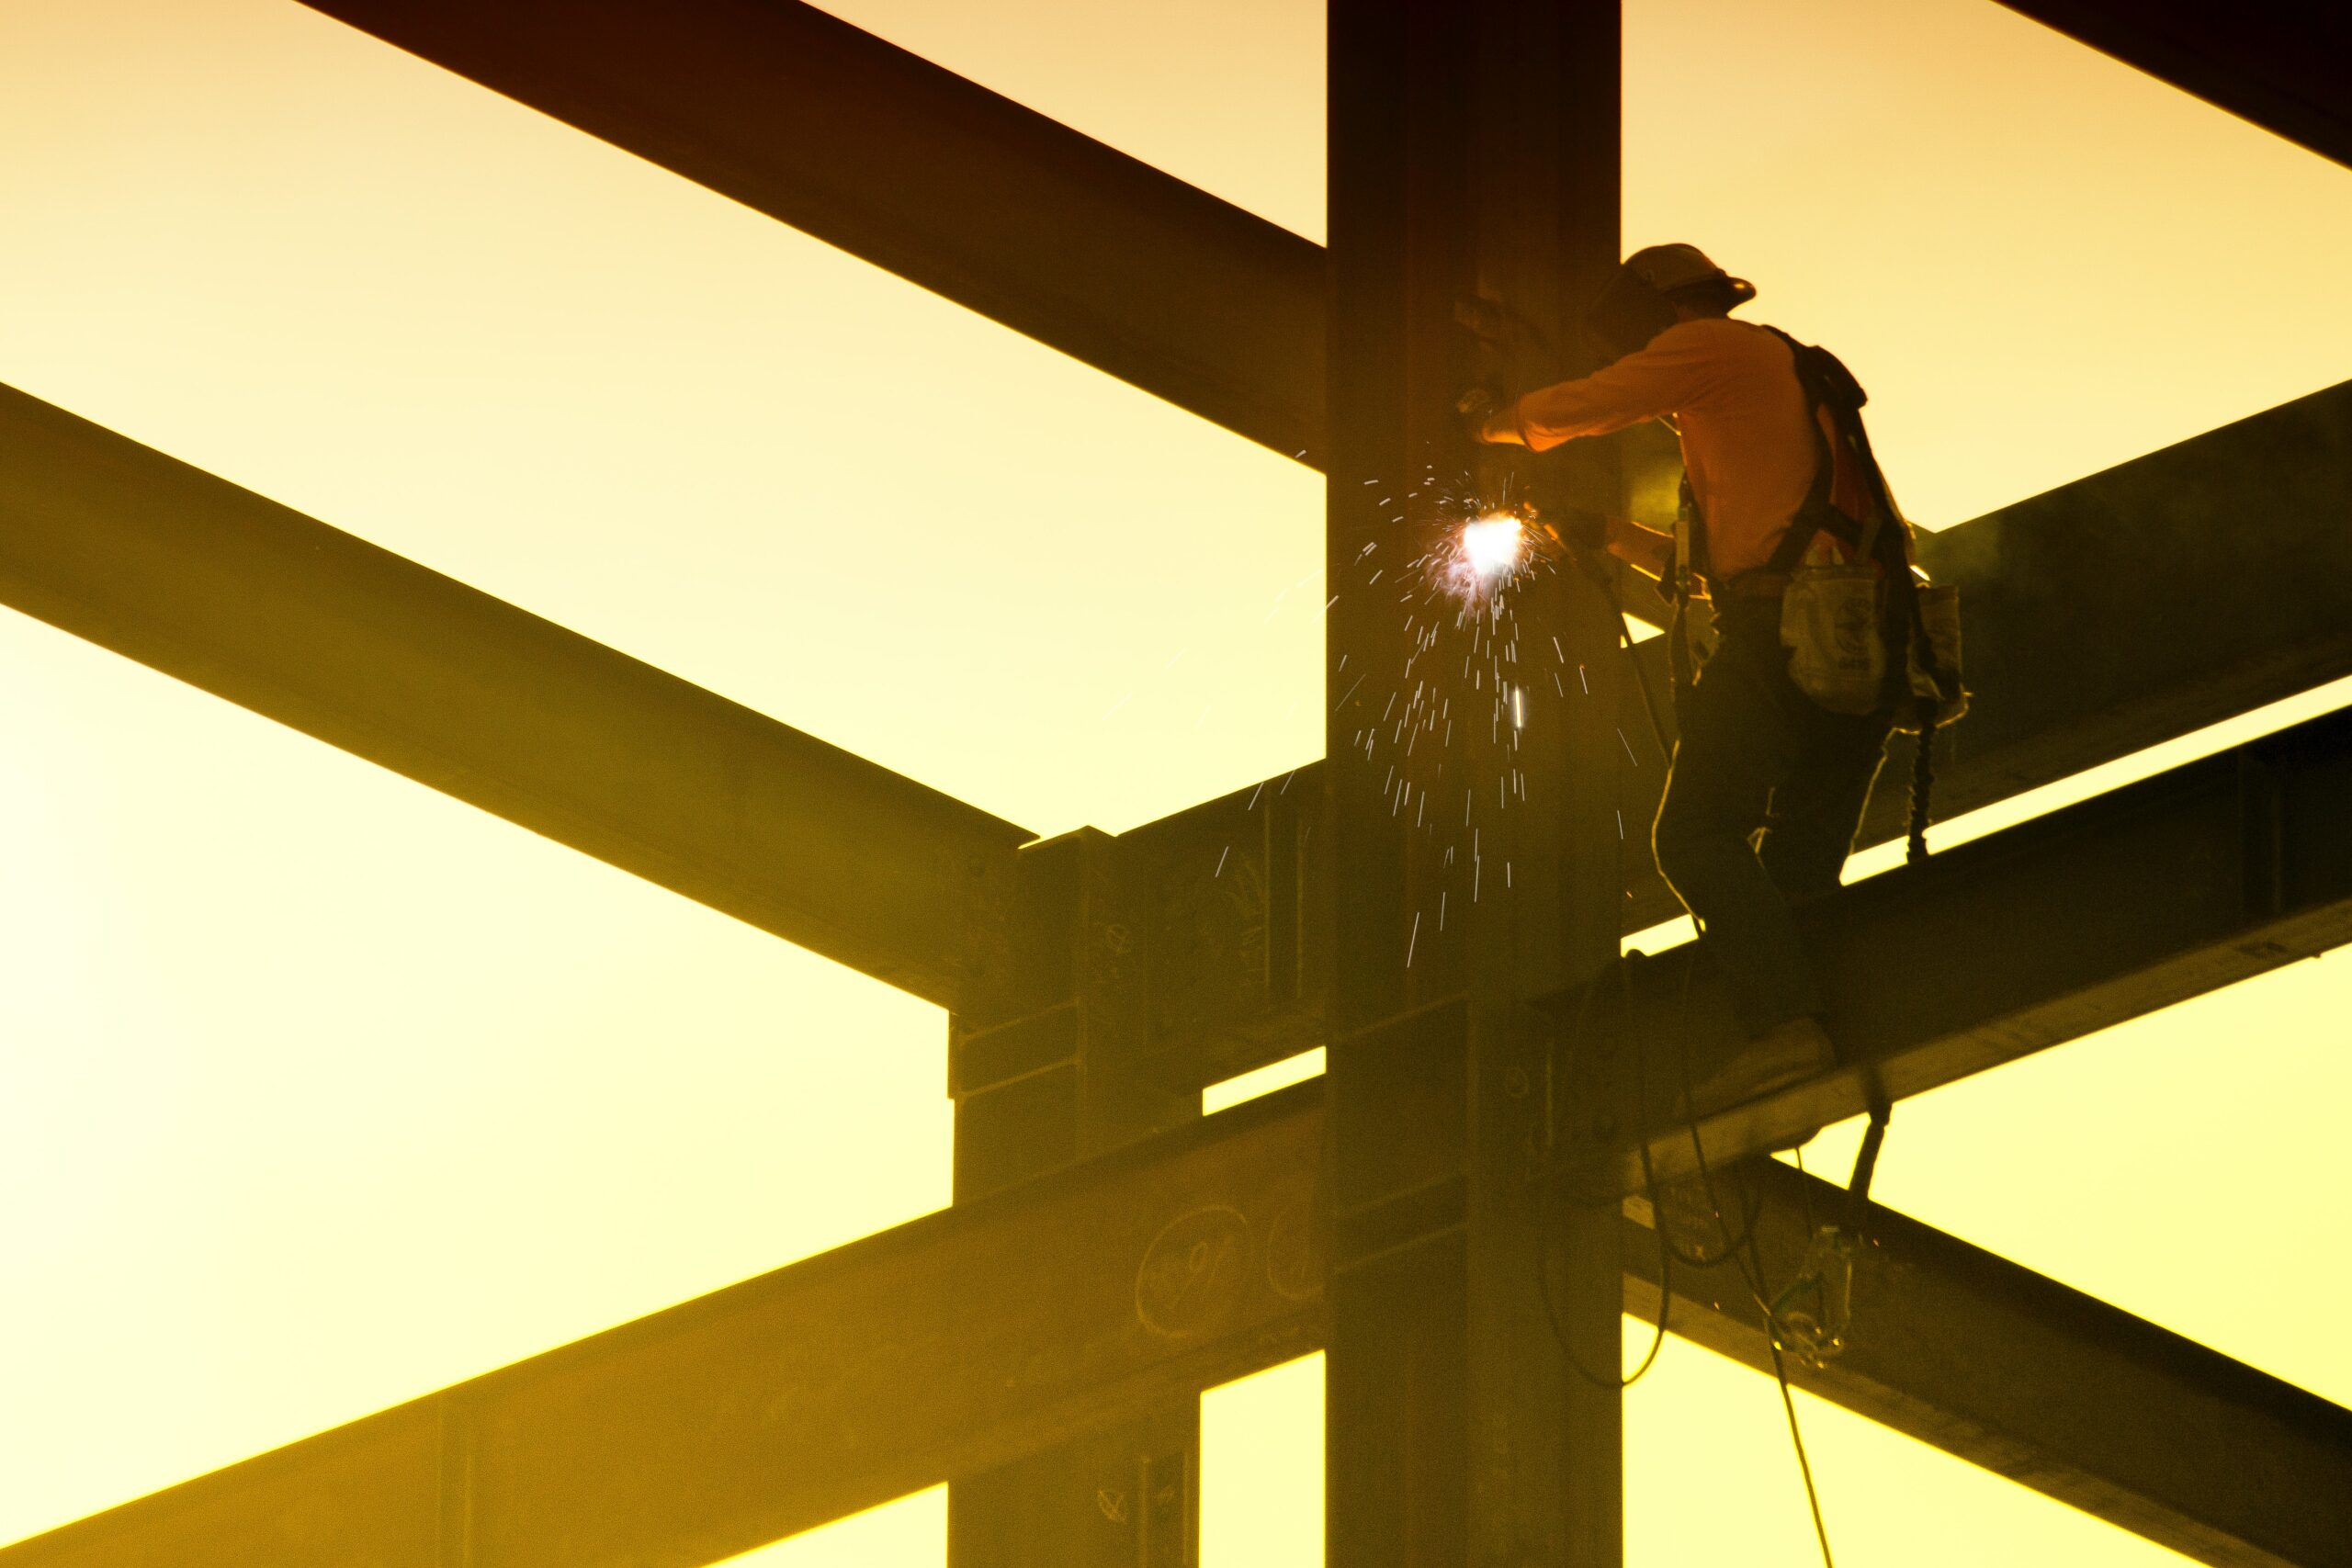 OzHelp launches national Tradie Wellbeing Survey